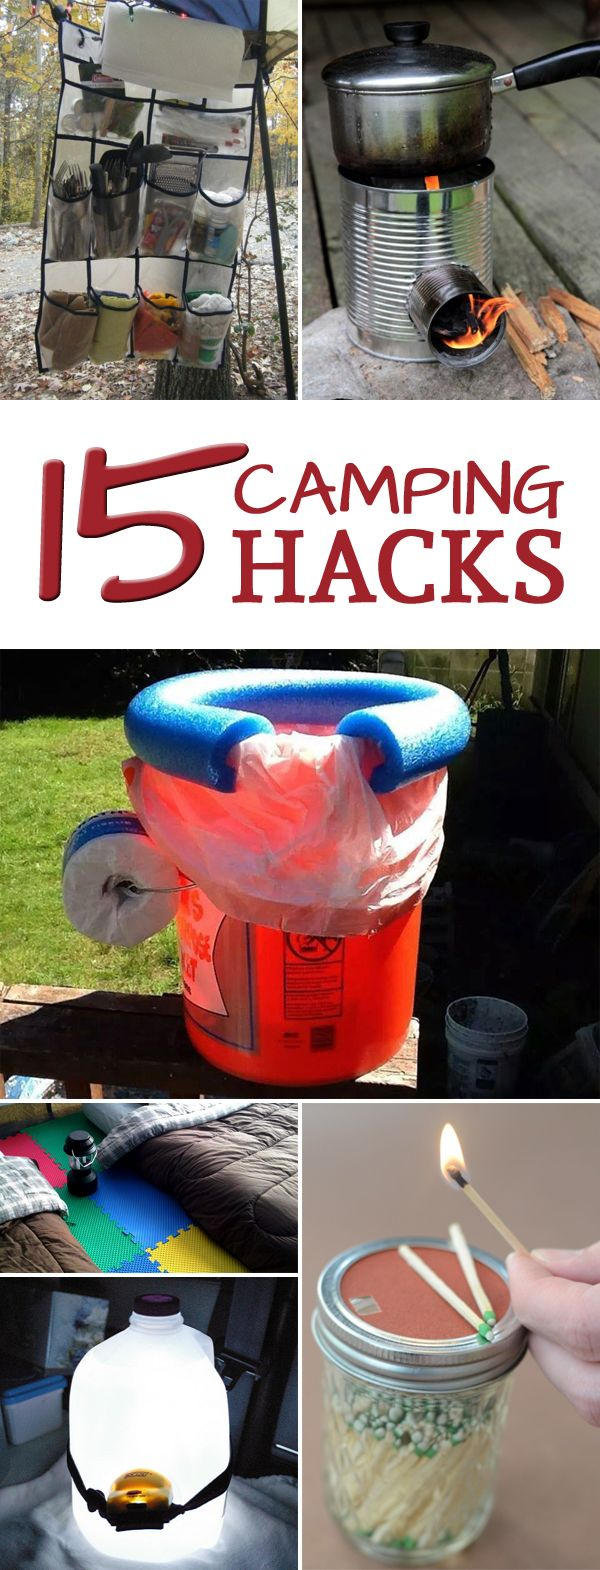 Here are some tips and tricks to make your next camping trip easier and more enj…